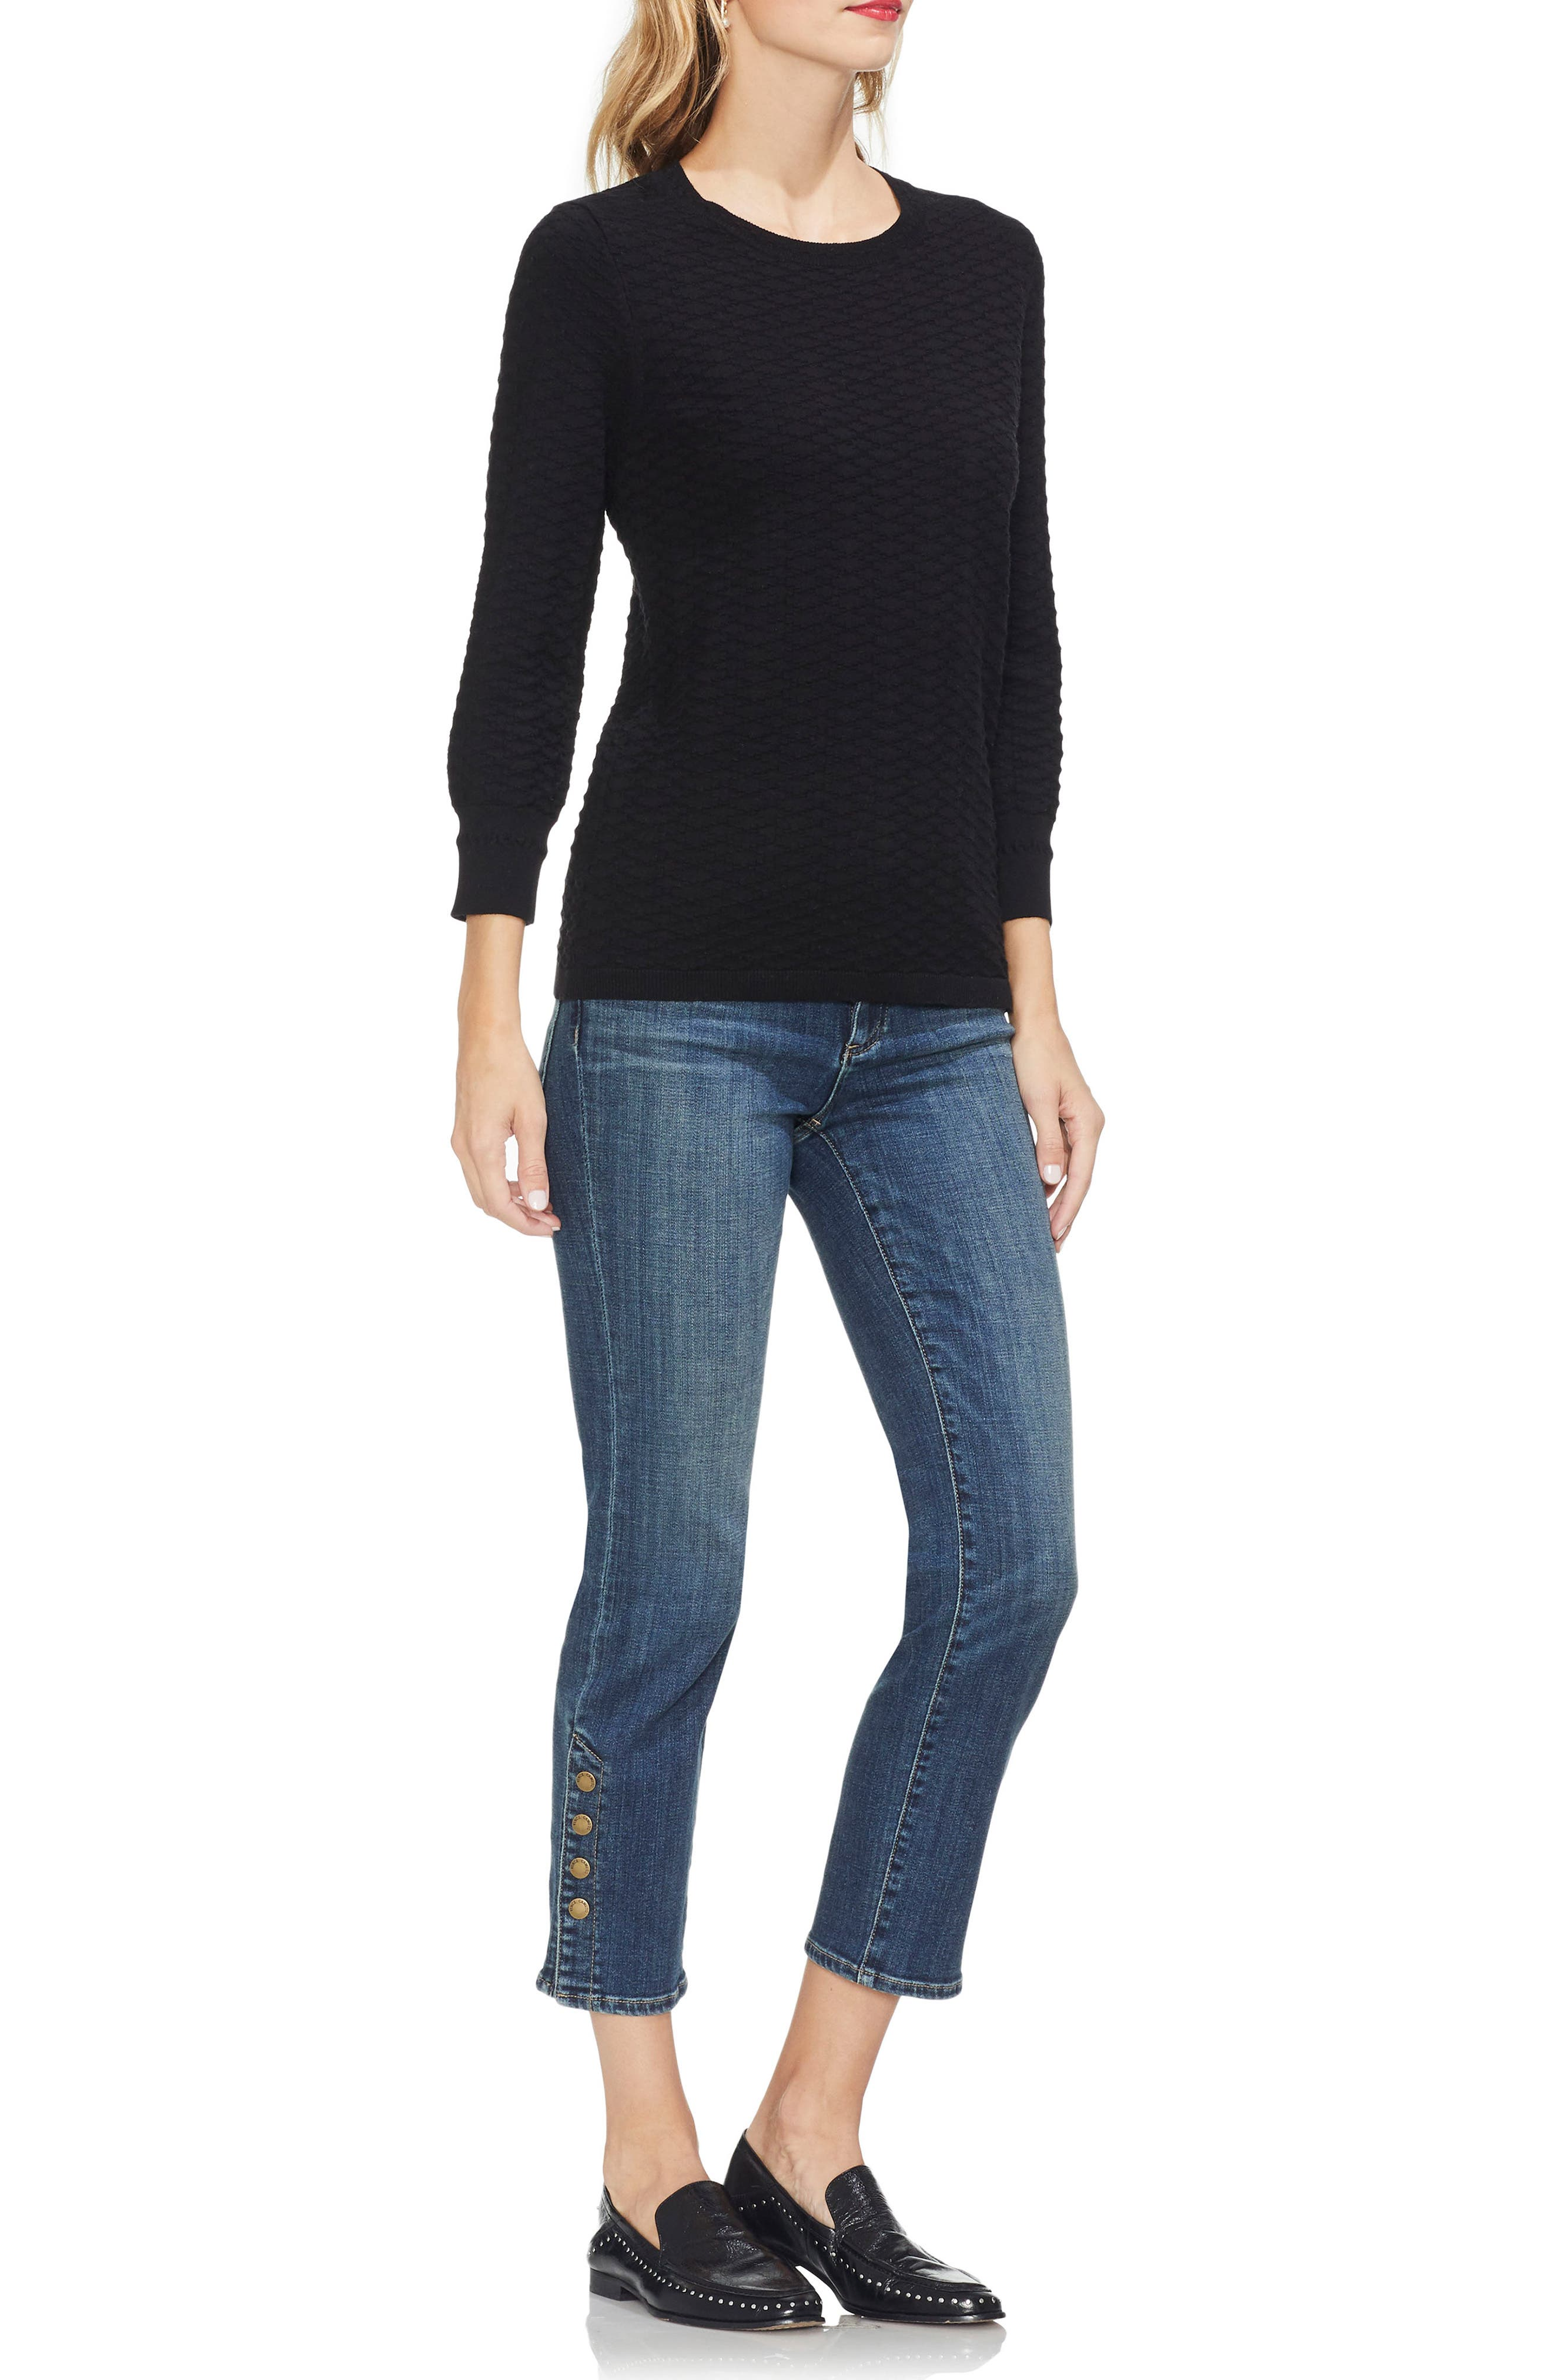 VINCE CAMUTO,                             Rhombus Stitch Sweater,                             Alternate thumbnail 3, color,                             006